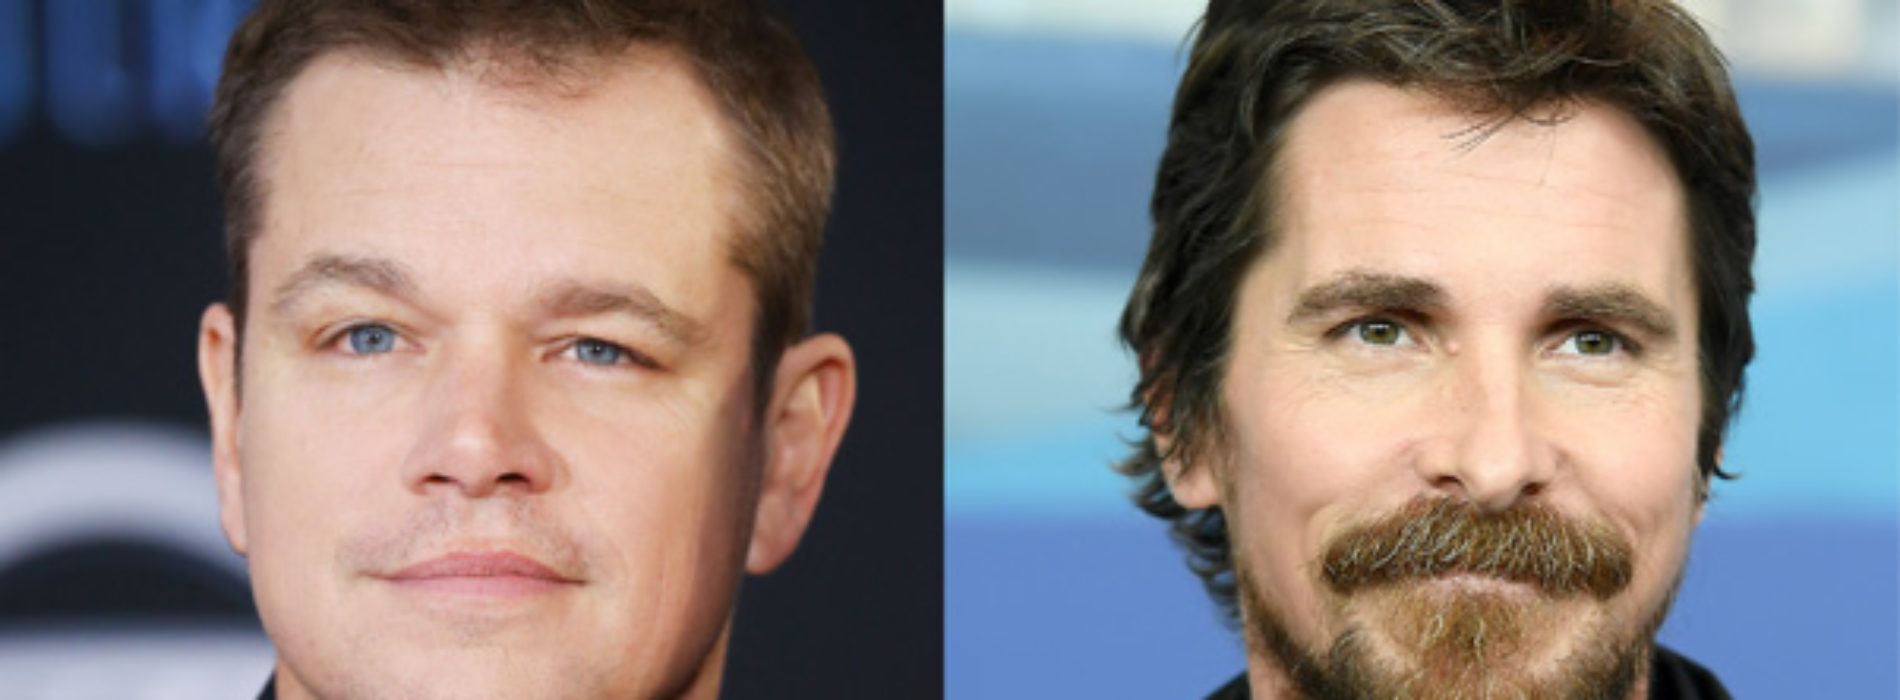 Matt Damon, Christian Bale To Wave Green Flag for 103rd Indianapolis 500